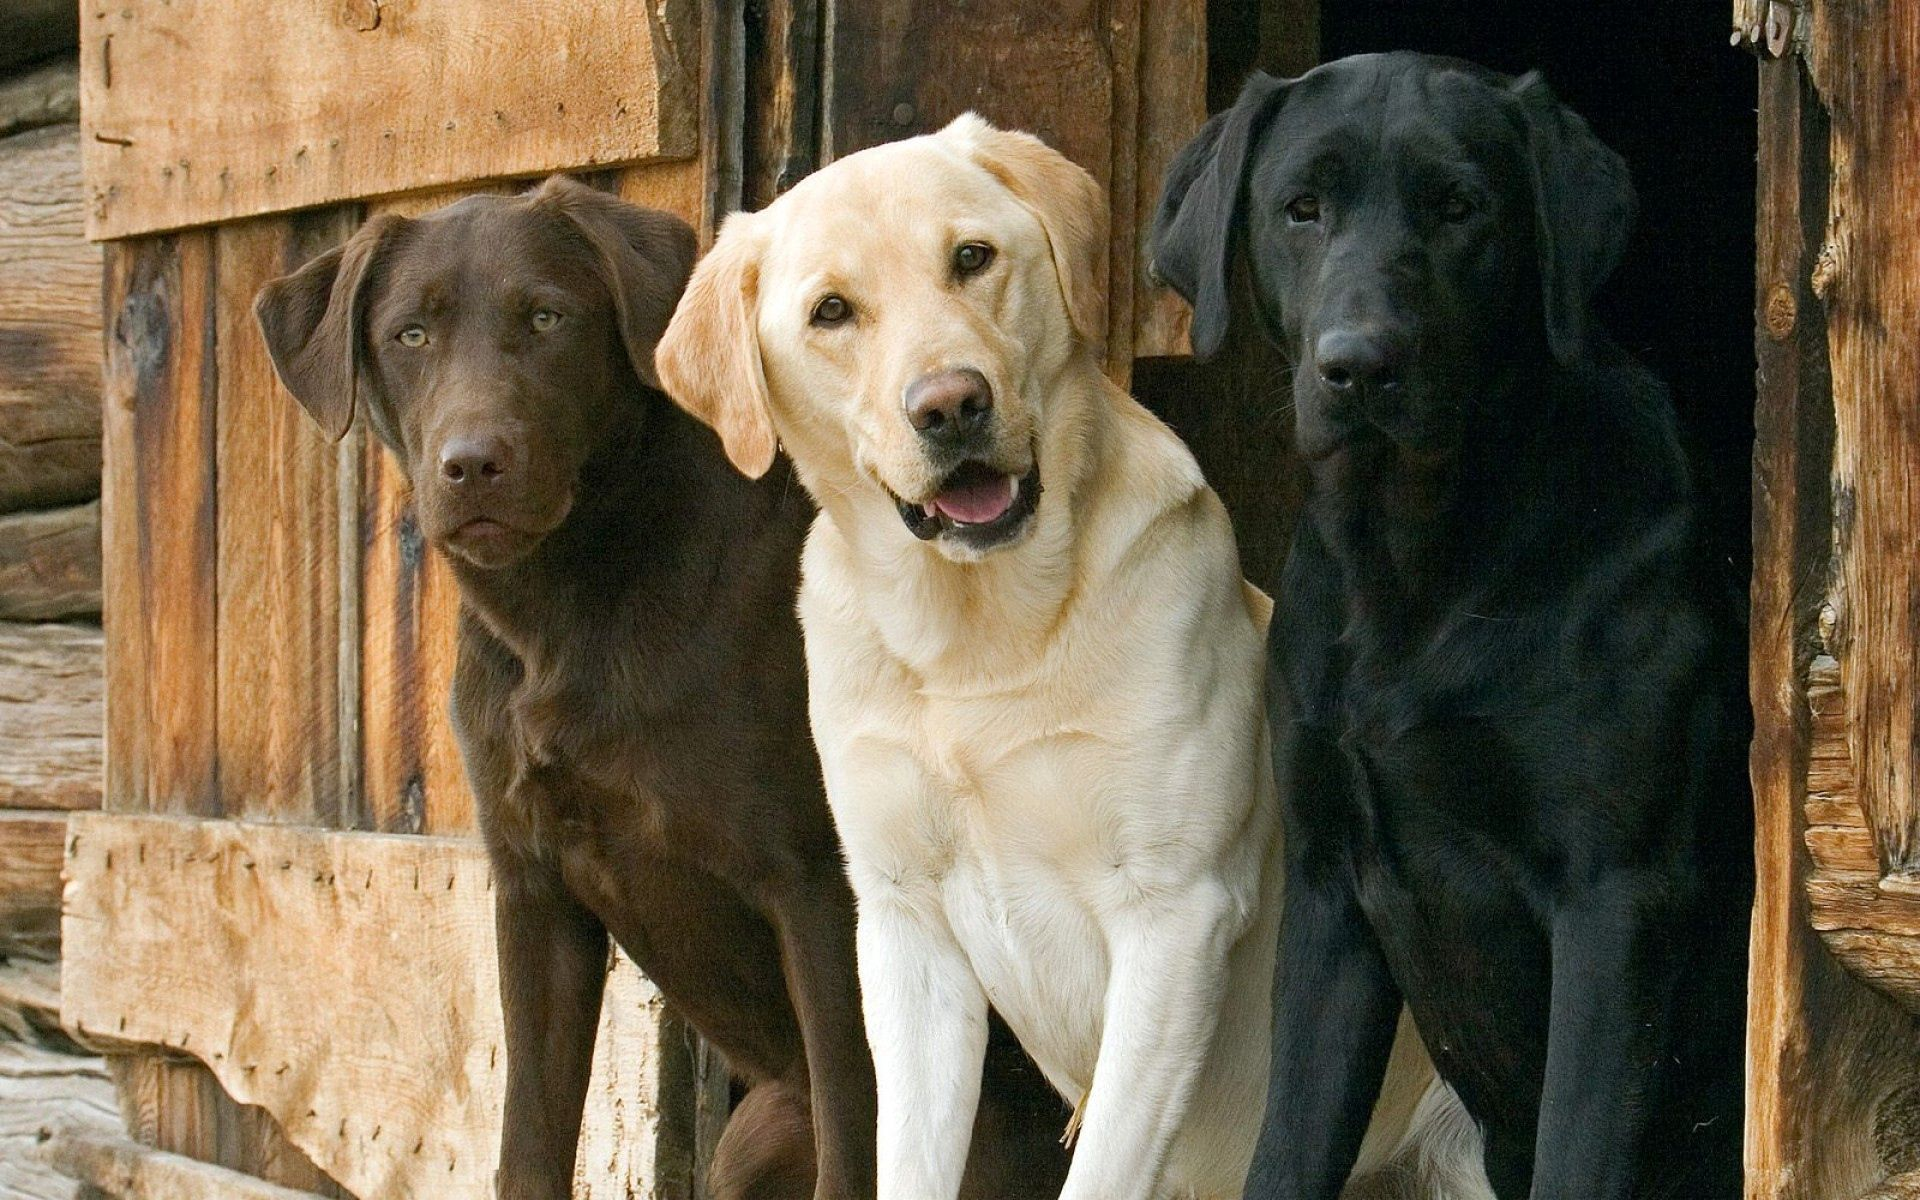 143091 download wallpaper Animals, Dogs, Three, Ears, Expectation, Waiting, Beautiful screensavers and pictures for free